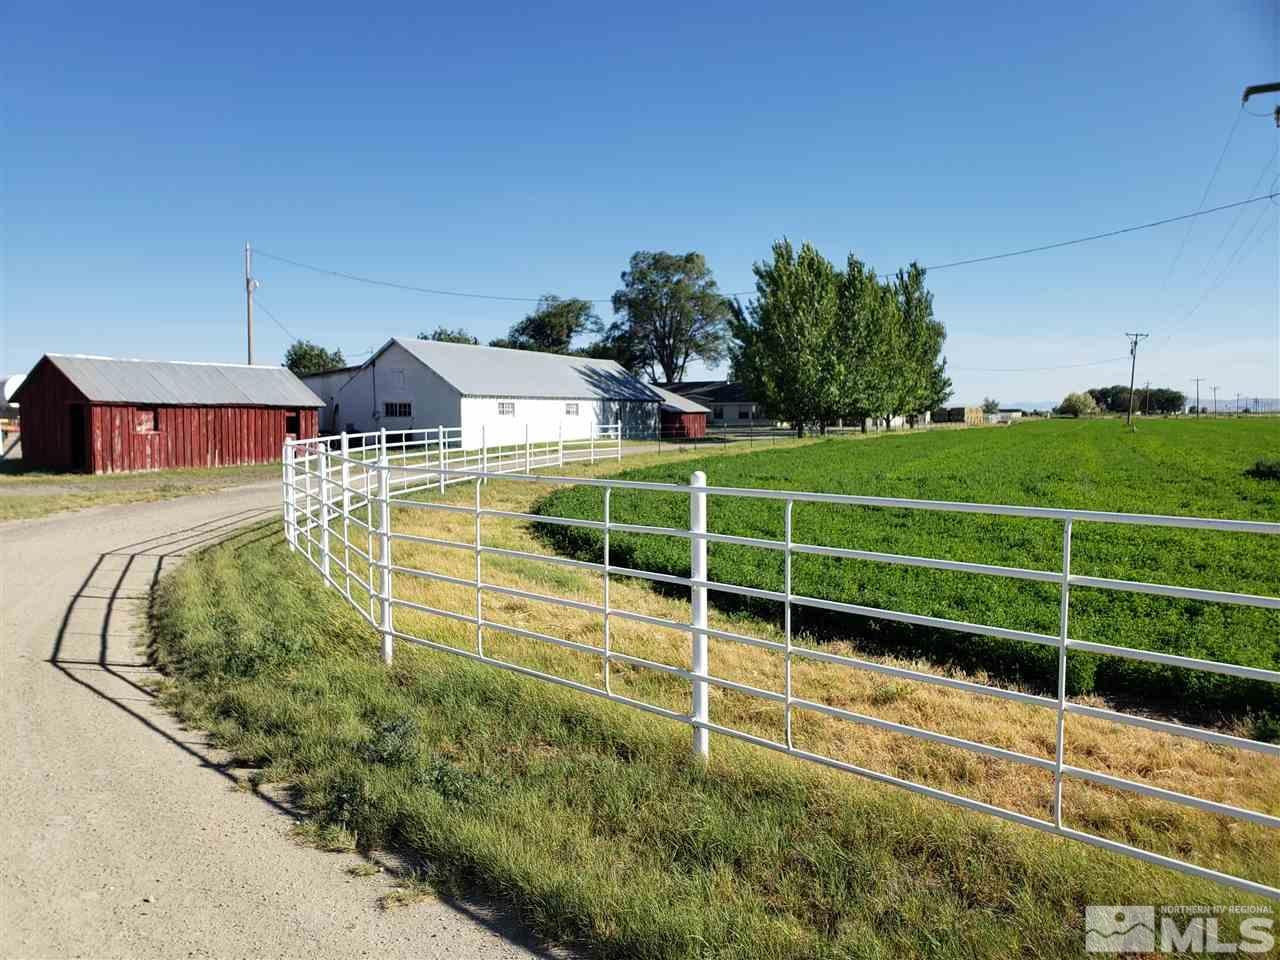 Image for 9145 101 Ranch Rd, Winnemucca, NV 89445